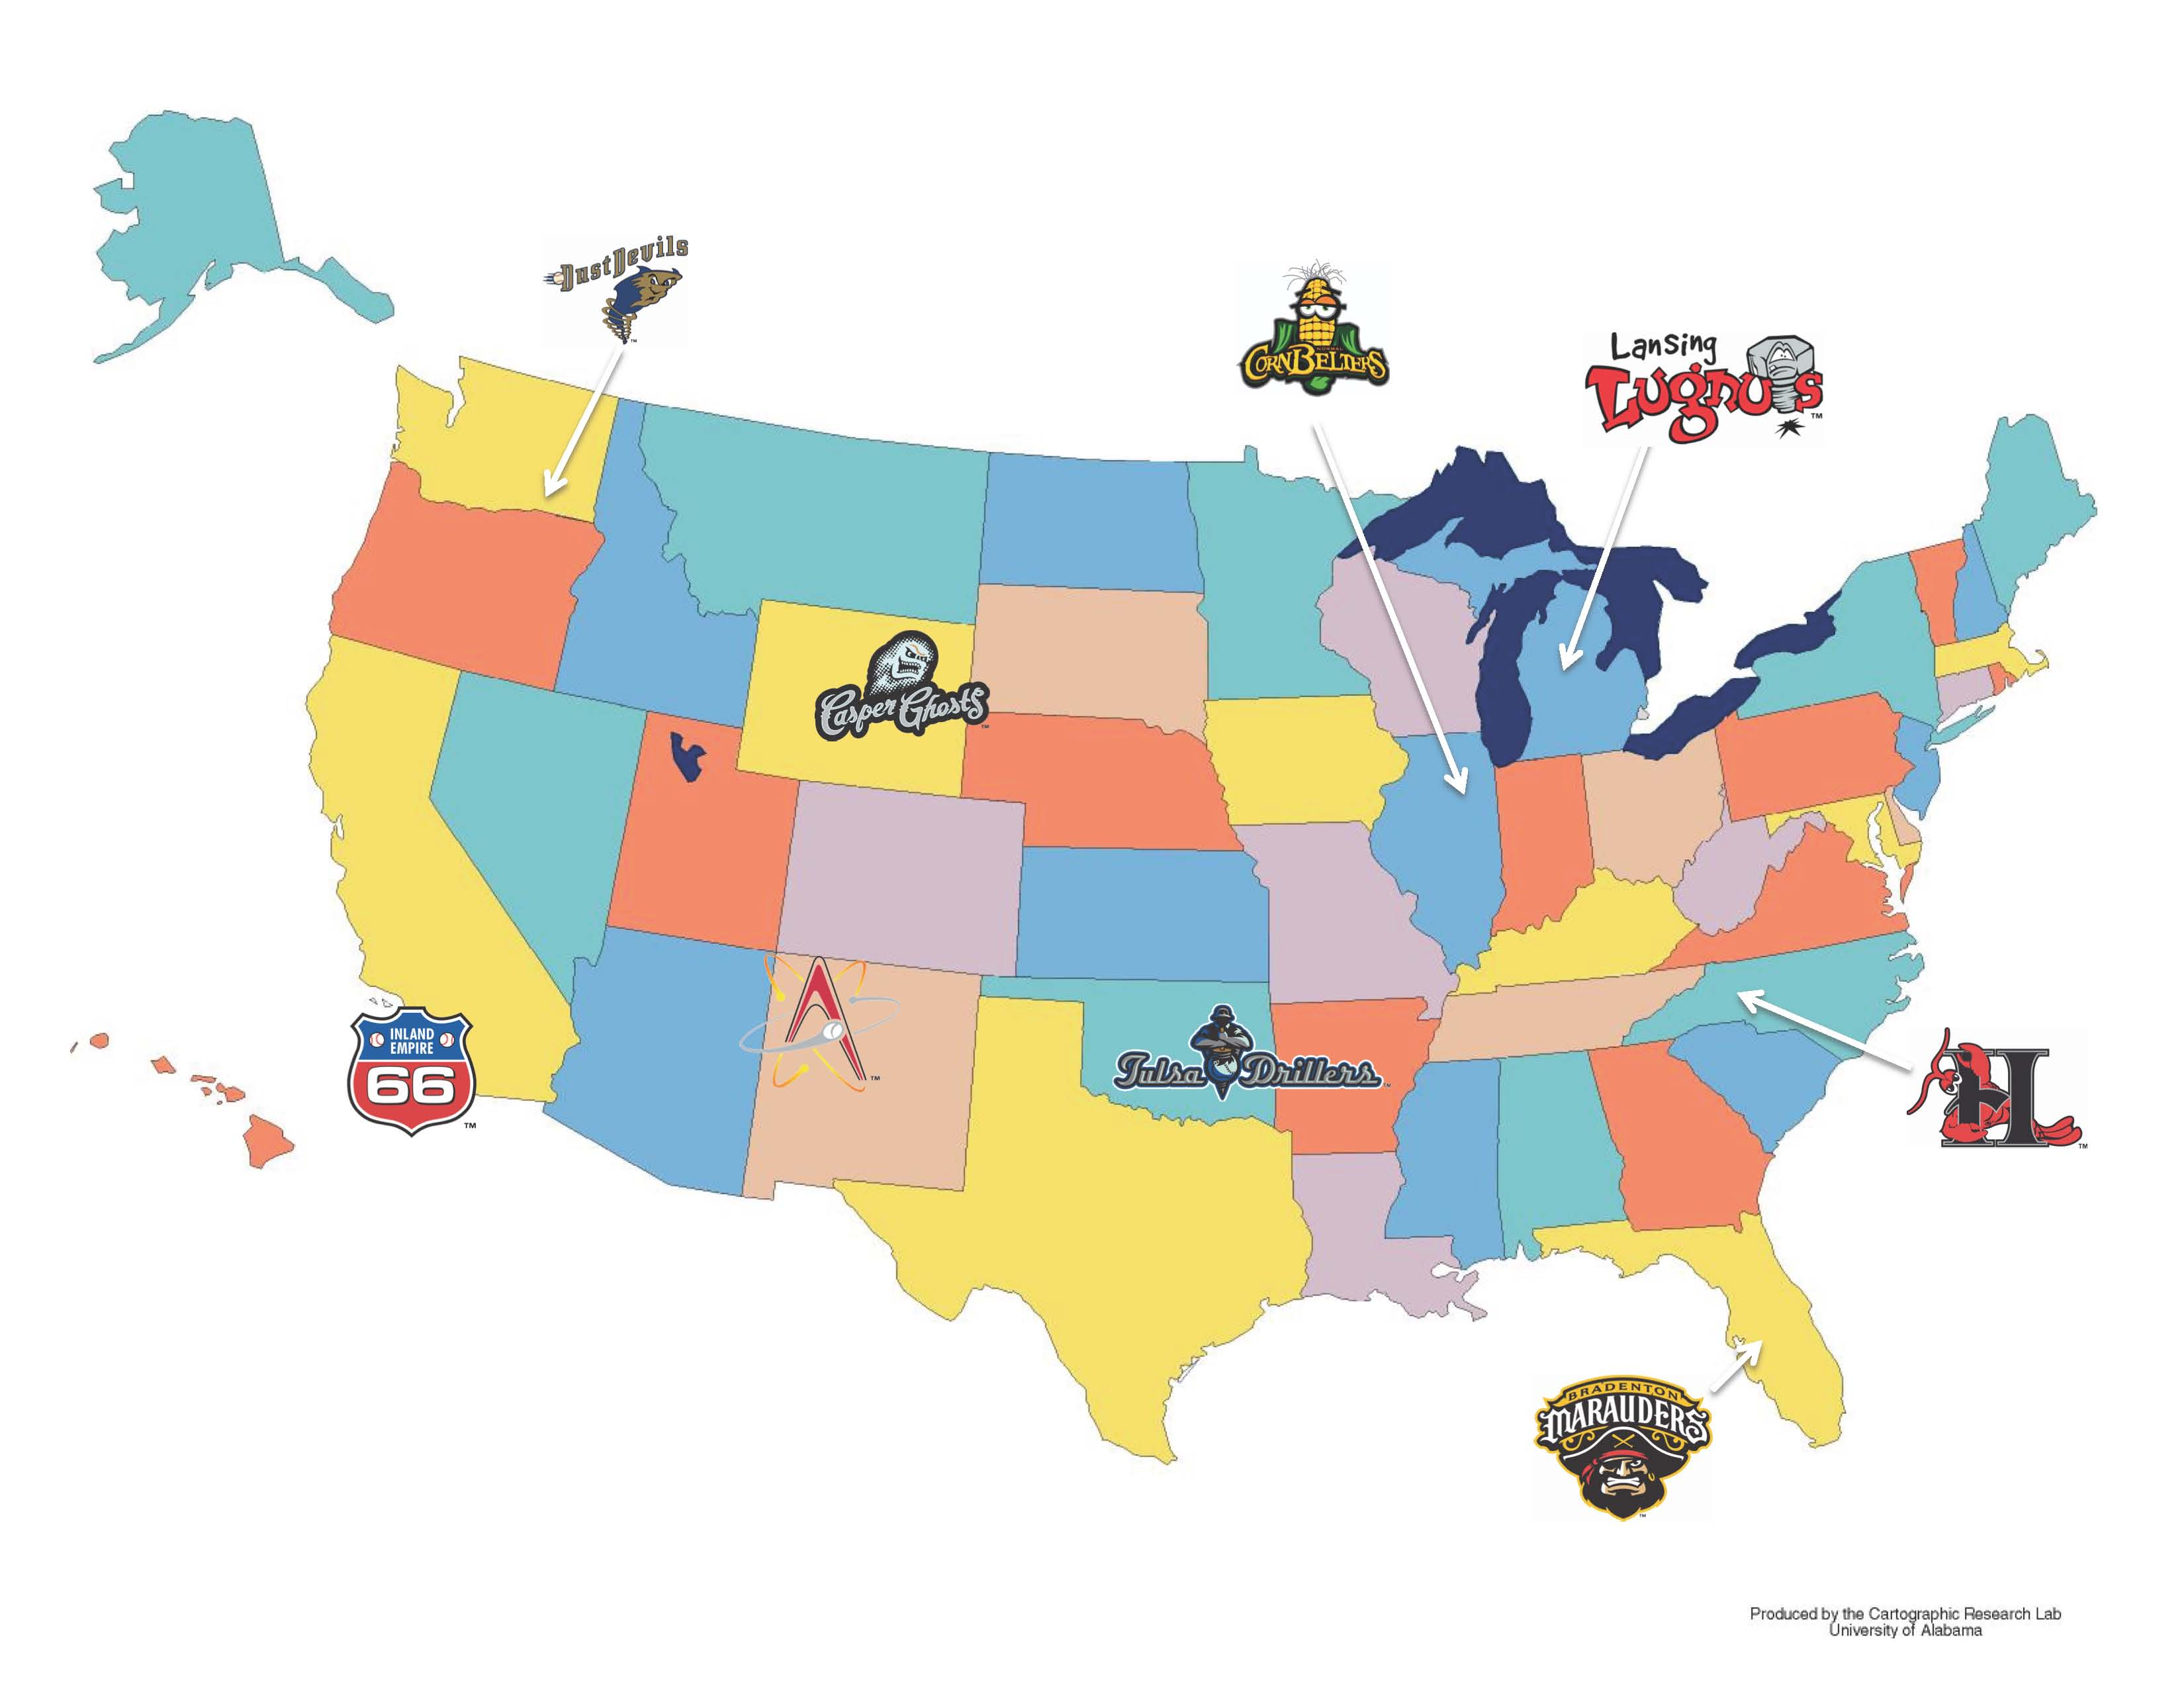 A Minor League Logo Tour Of The USA Chris Creamers - Map of baseball teams in us